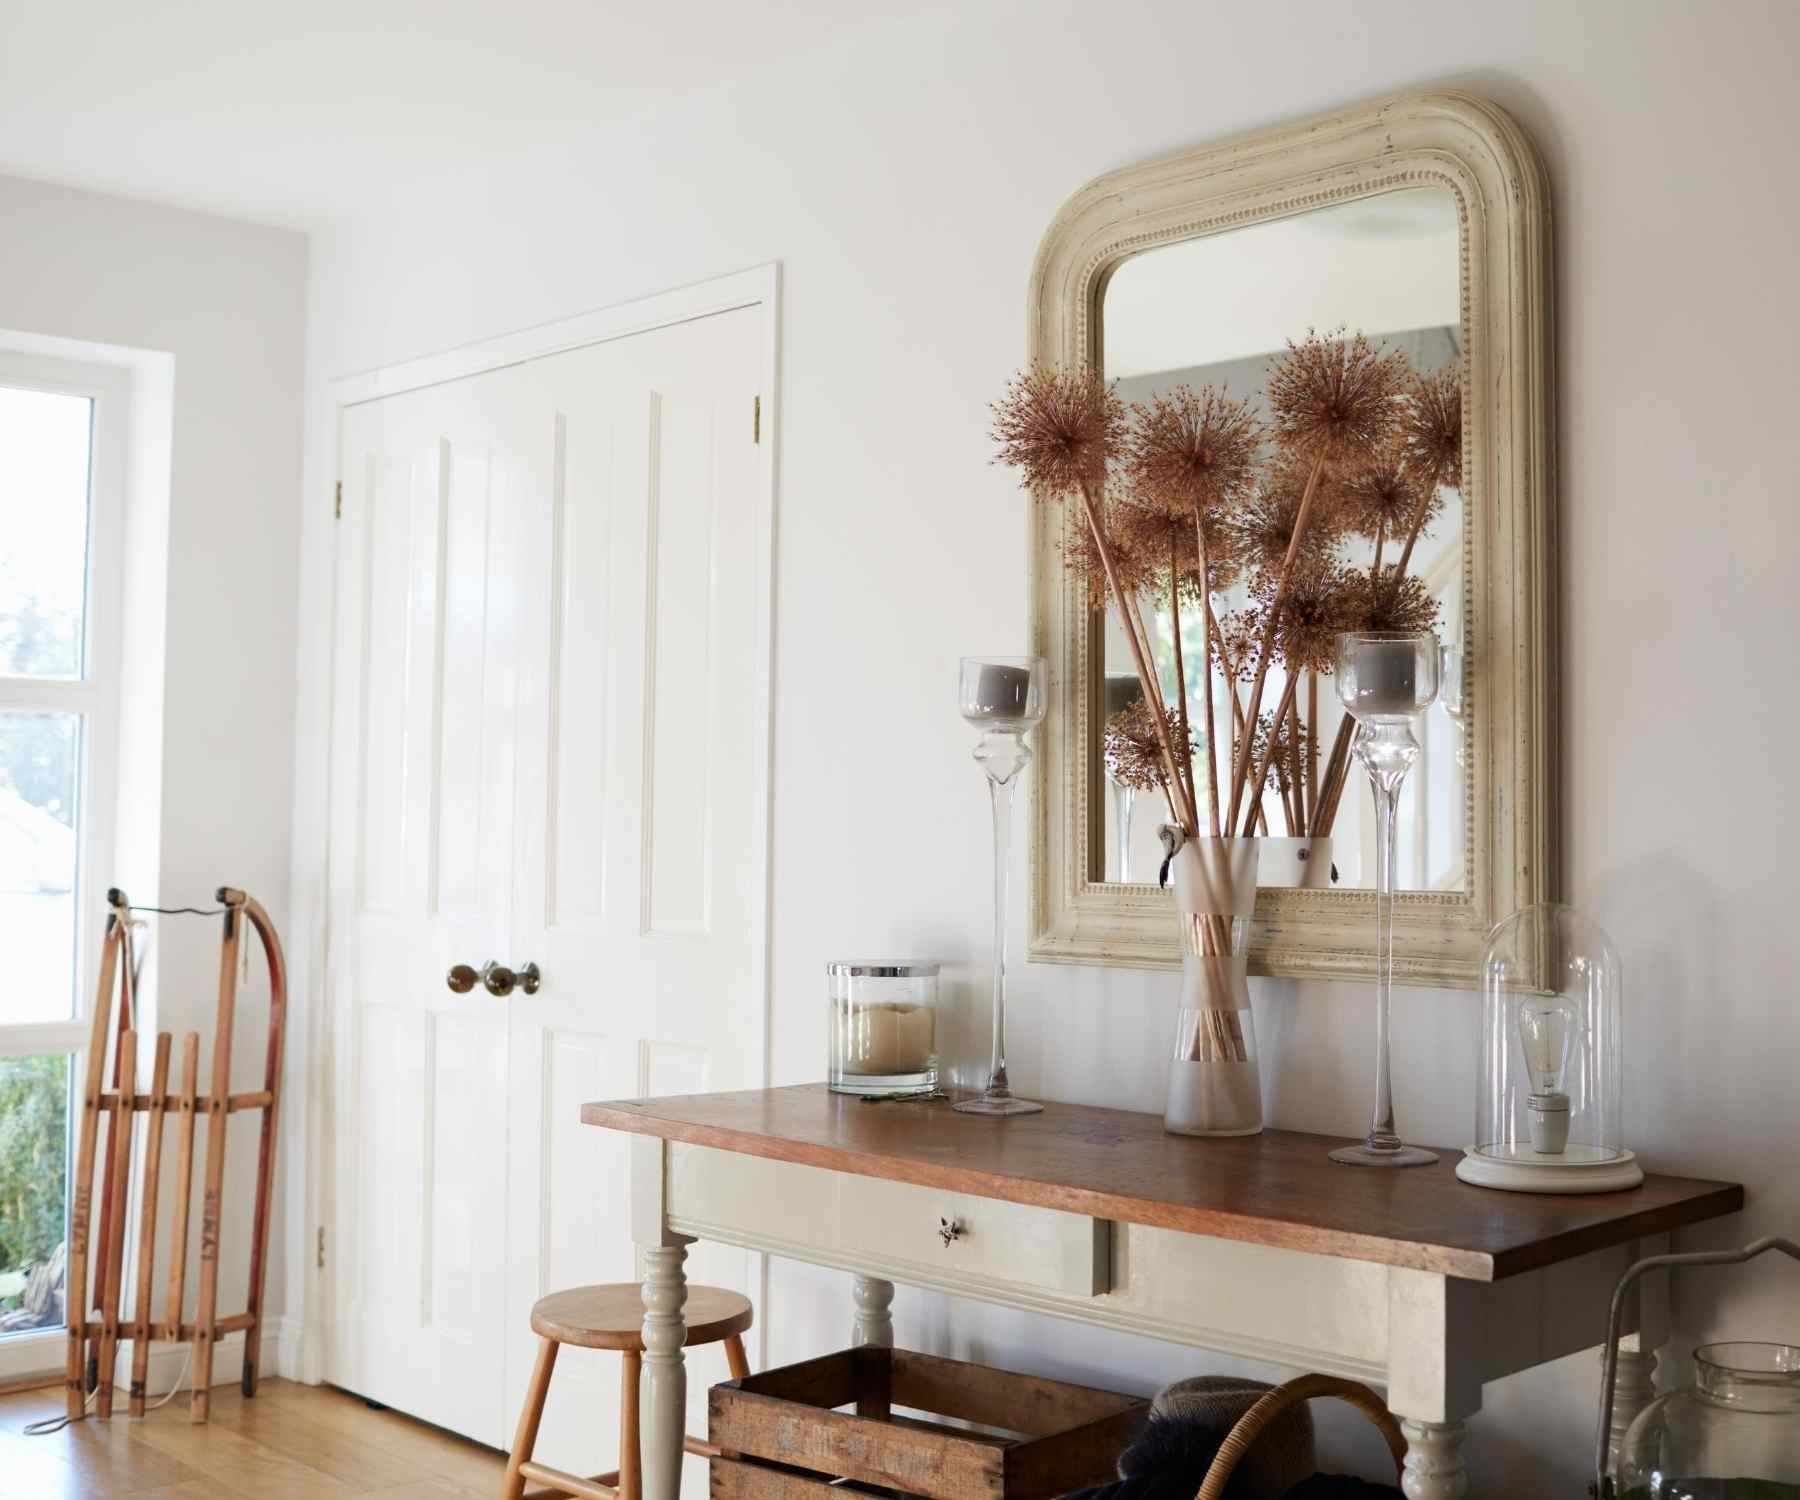 Bright hallway with wooden console table and mirror with dried flowers in vase